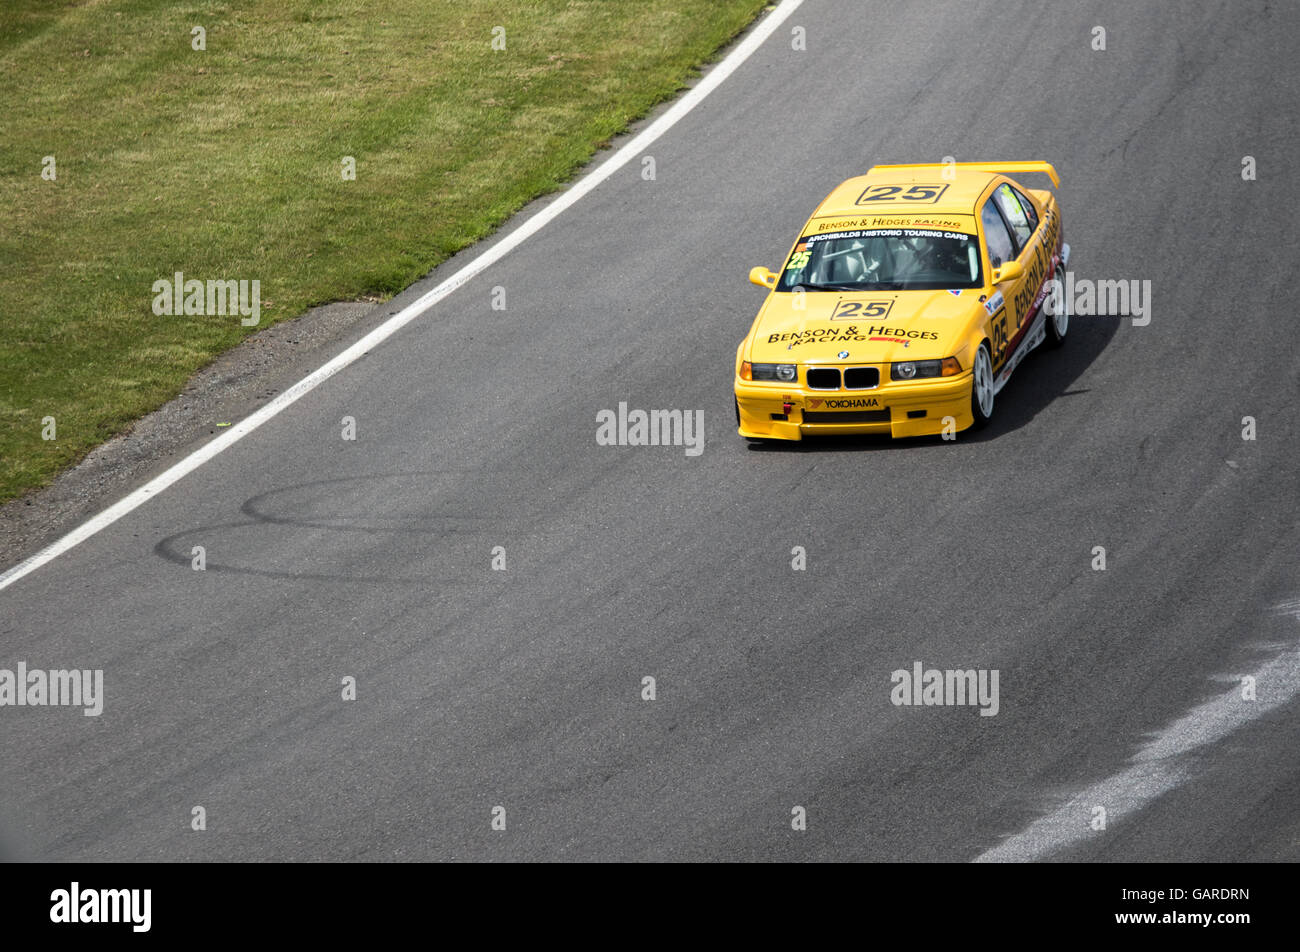 Yellow 1993 BMW 318 on track at Brands Hatch for the Super Touring Car Challenge race - Stock Image